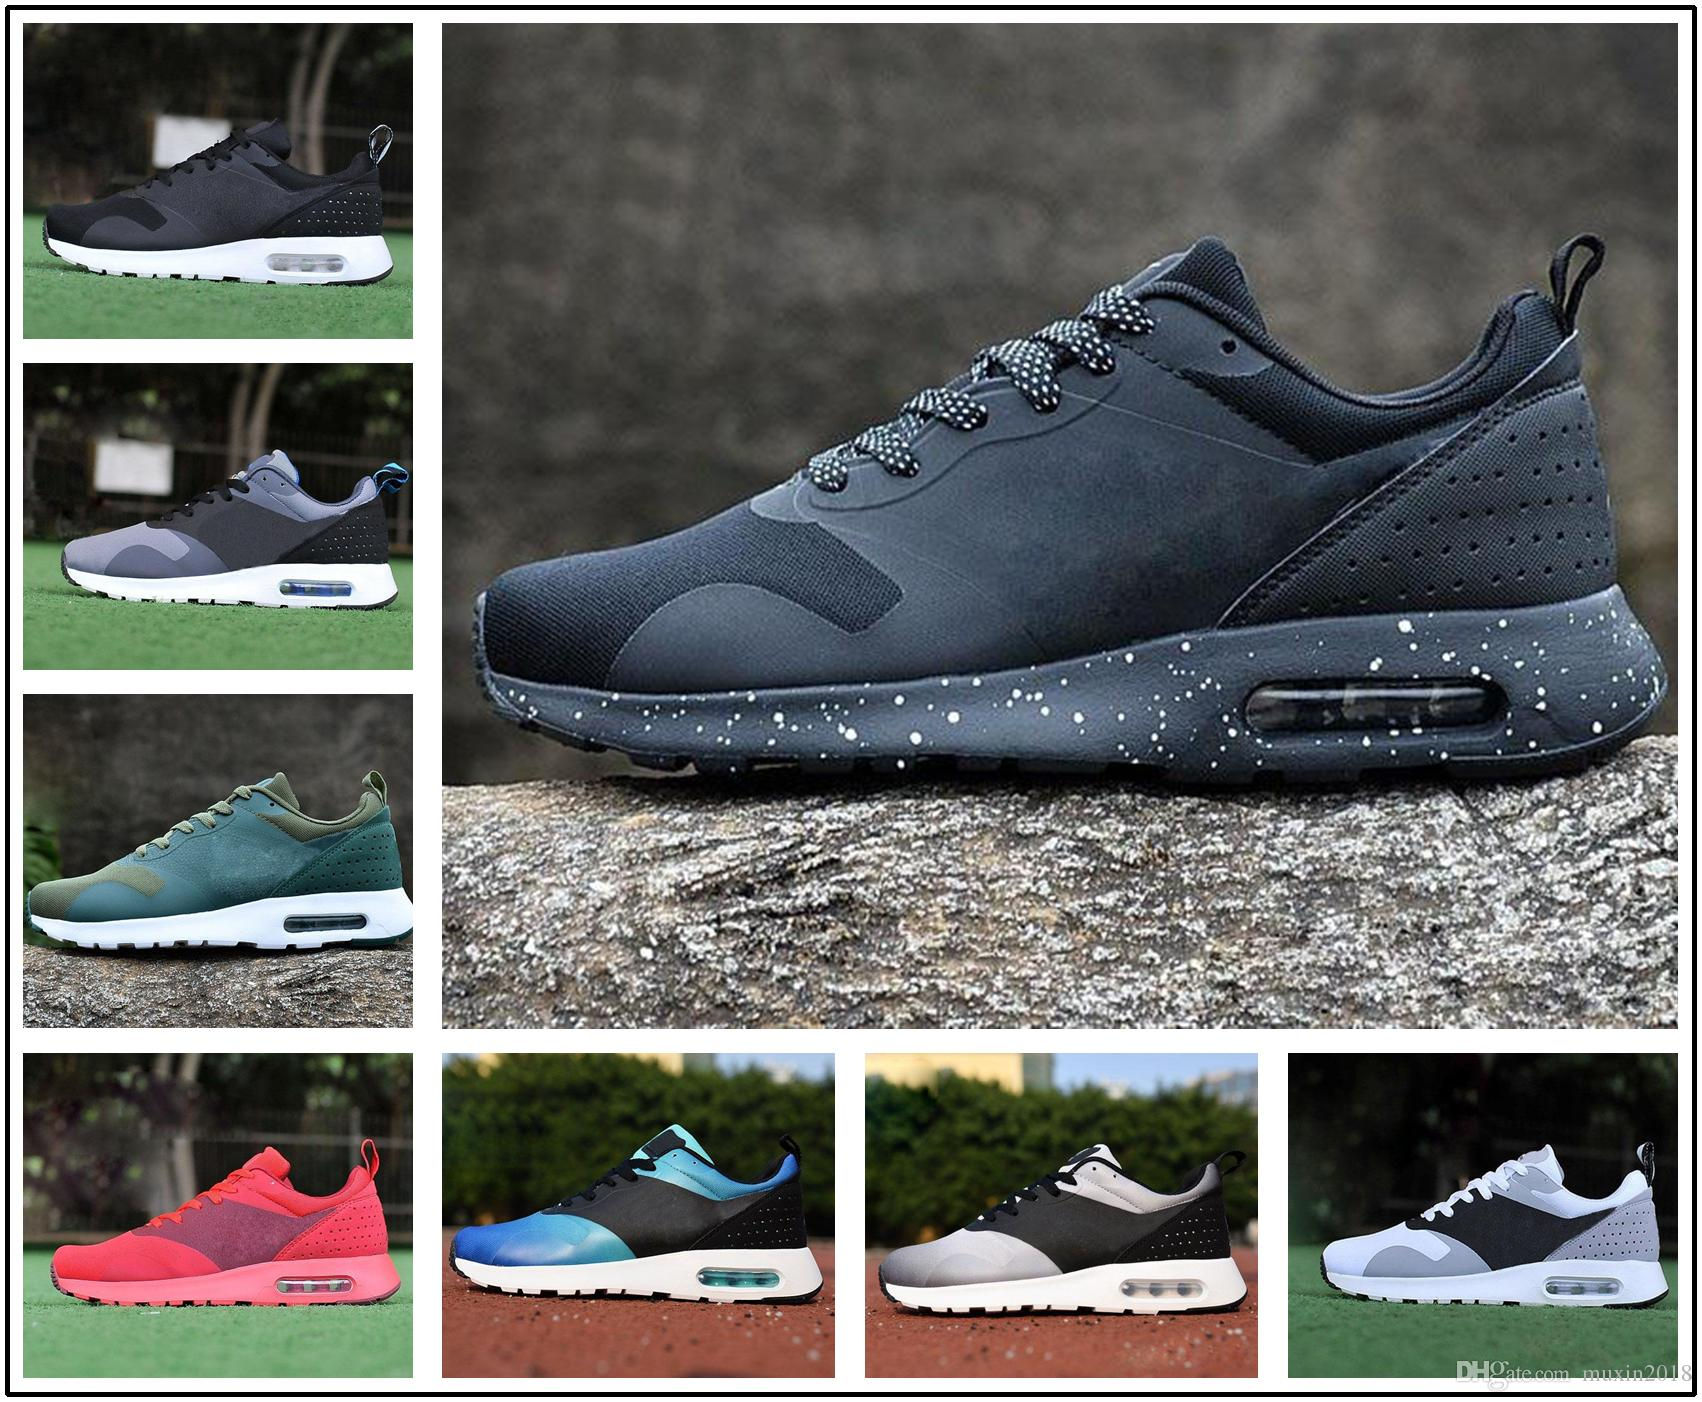 the best attitude 6e074 be723 Acheter Nike Air Max 87 90 Airmax 87 90 2017 2018 87 Hommes Camouflage  RUNNING Chaussures 100% Original Tout Noir Chaussures De Sport Thea 2017  Chaussures ...